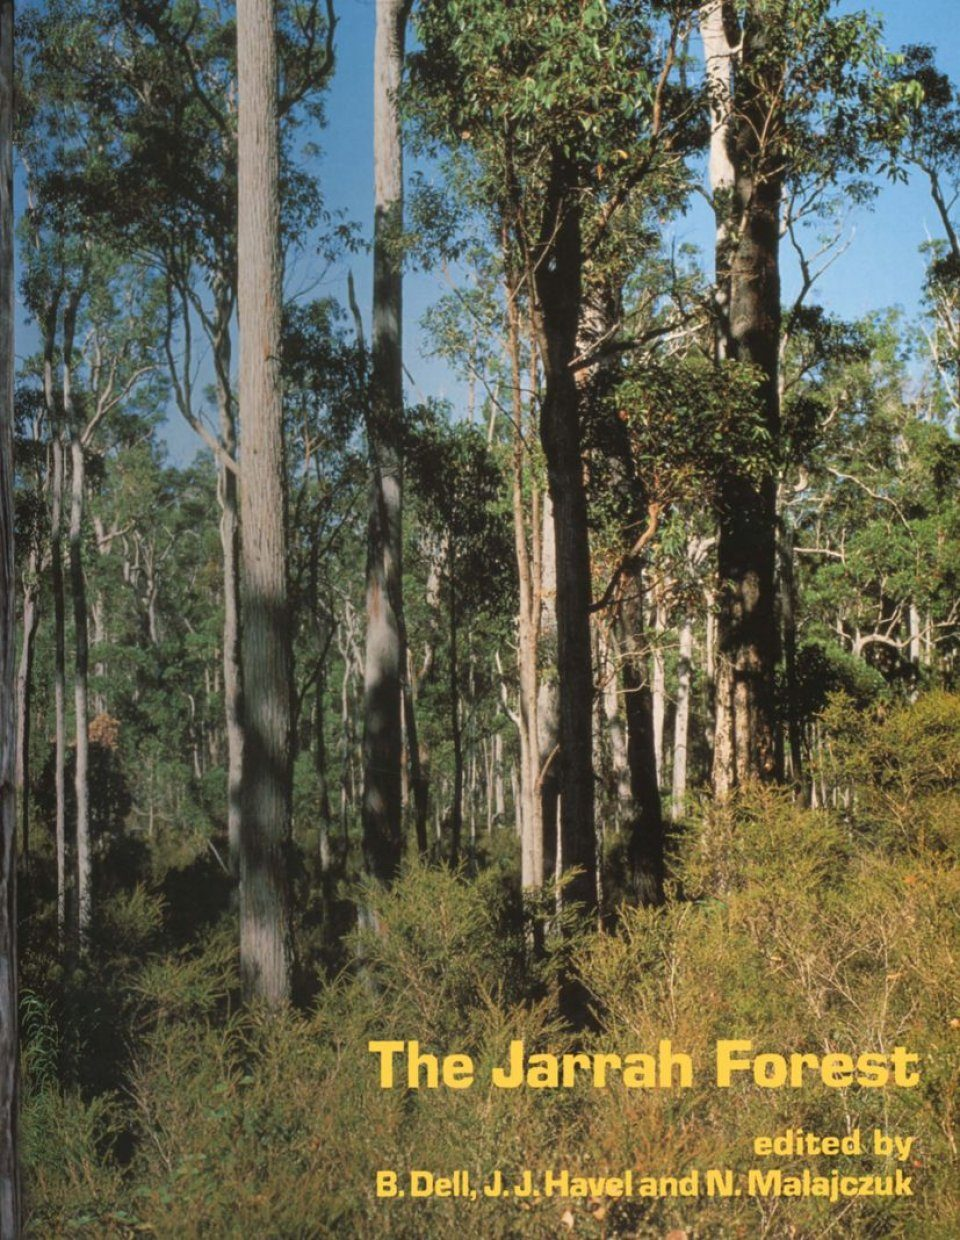 The Jarrah Forest